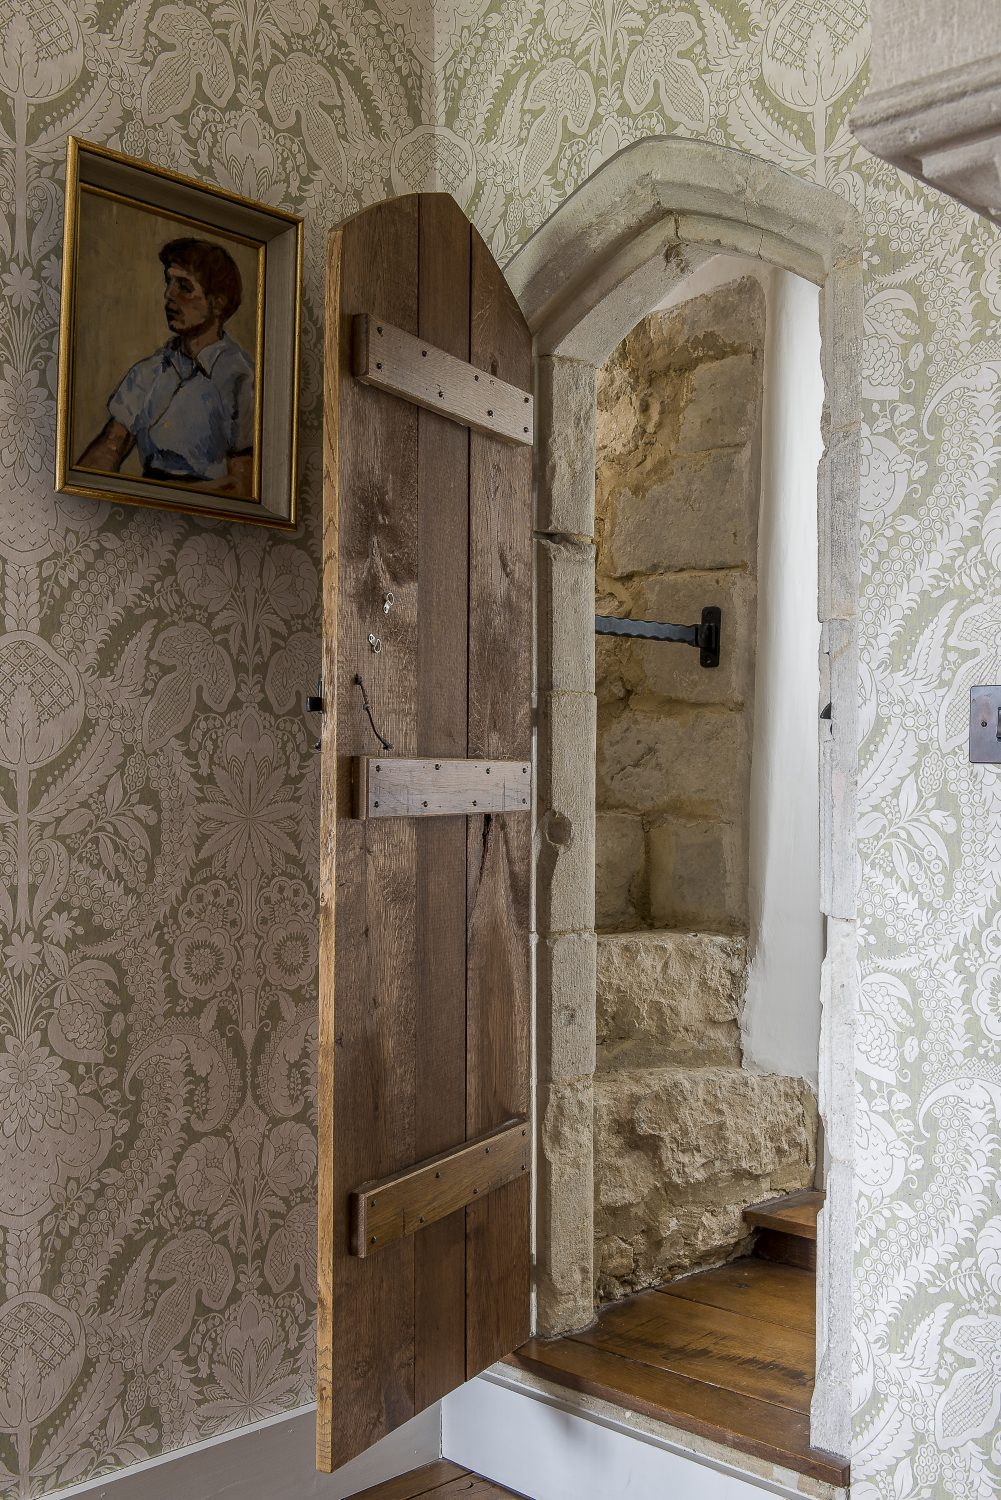 A door in the Hellebore bedroom's bathroom leads to a secret passage through to the Peony bedroom